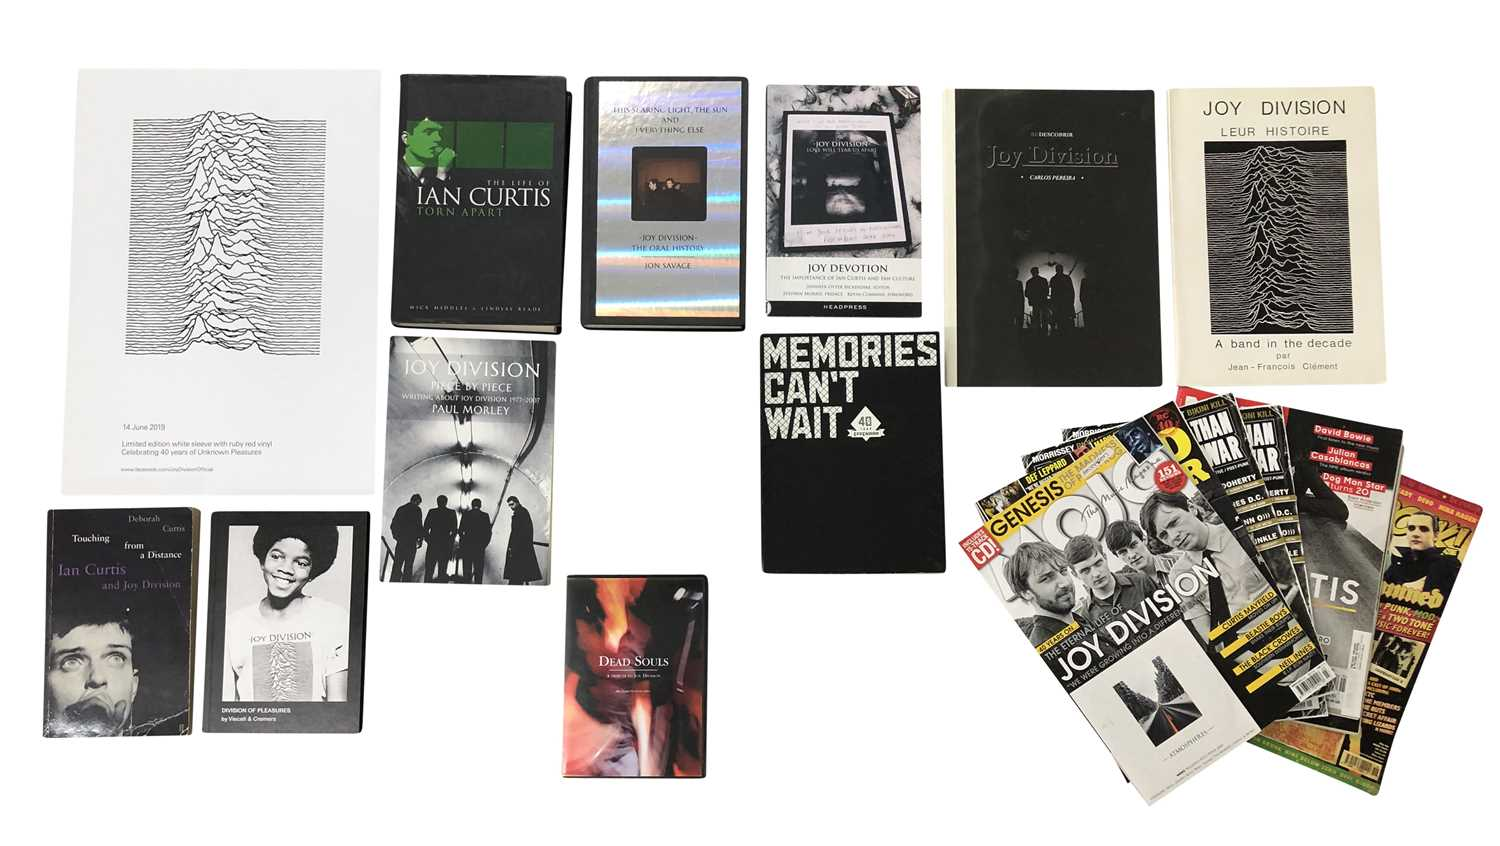 JOY DIVISION BOOKS AND MAGAZINES COLLECTION